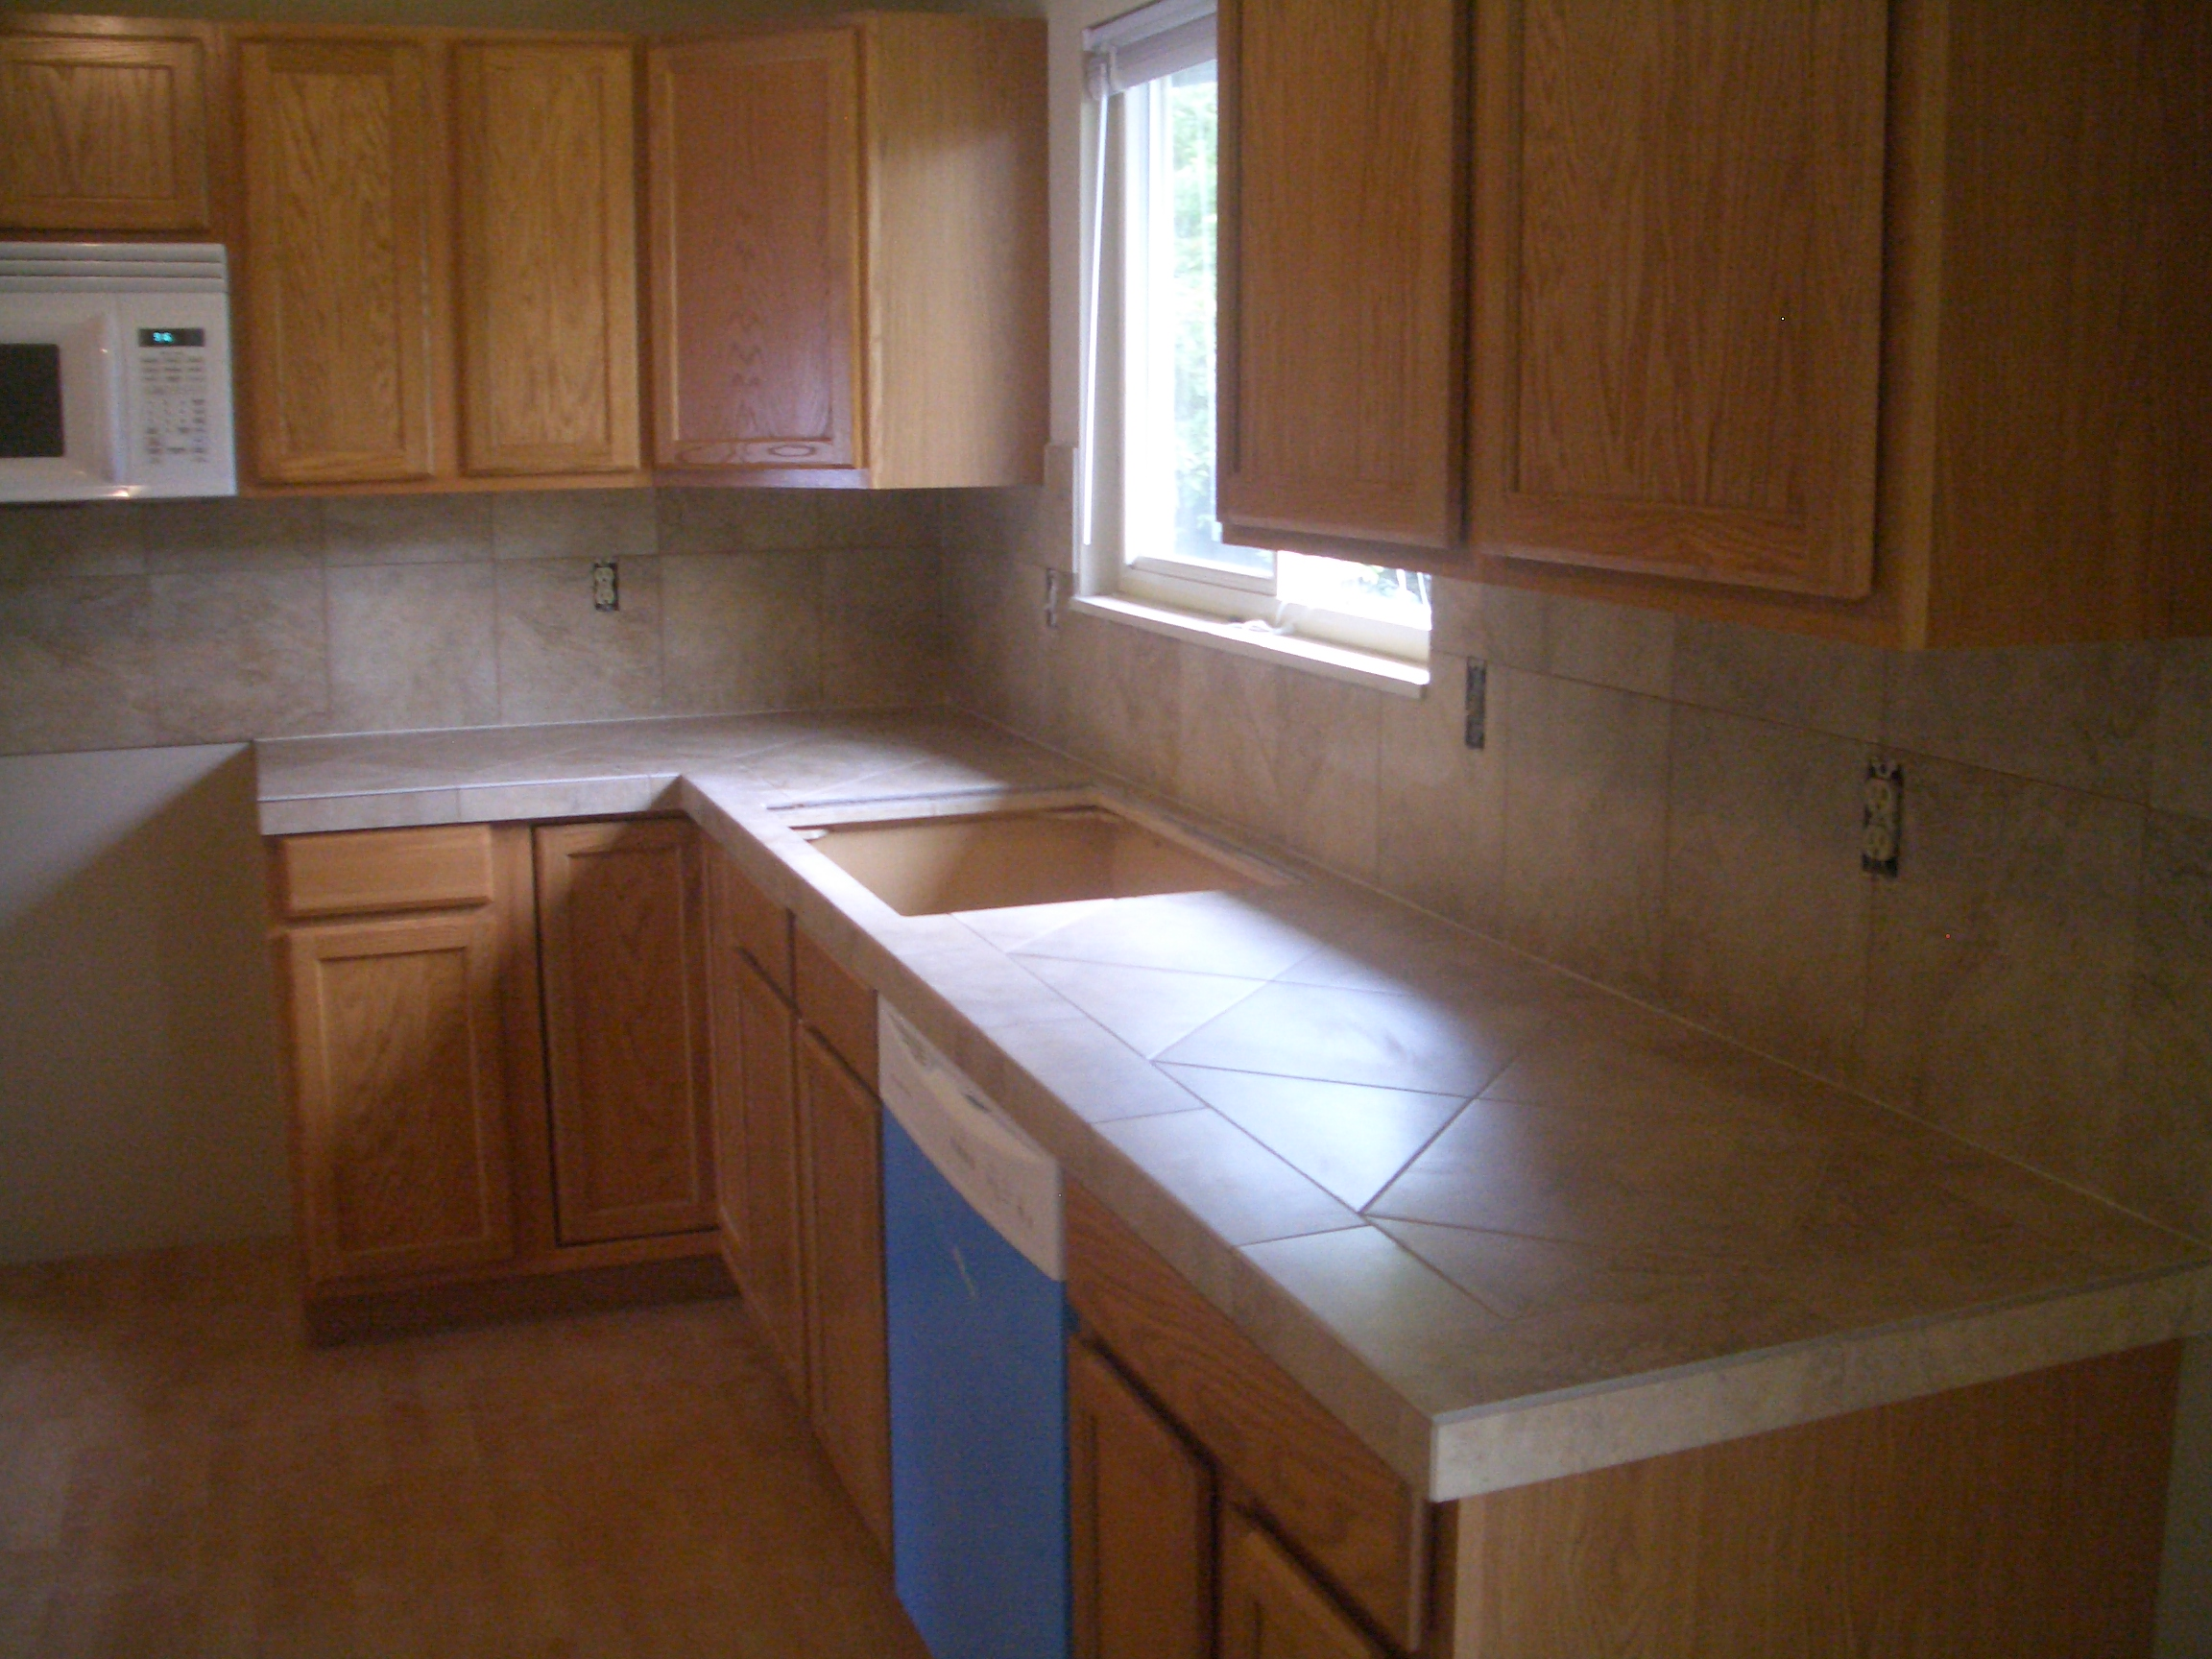 Tile Countertops For Kitchens : Kitchen tile